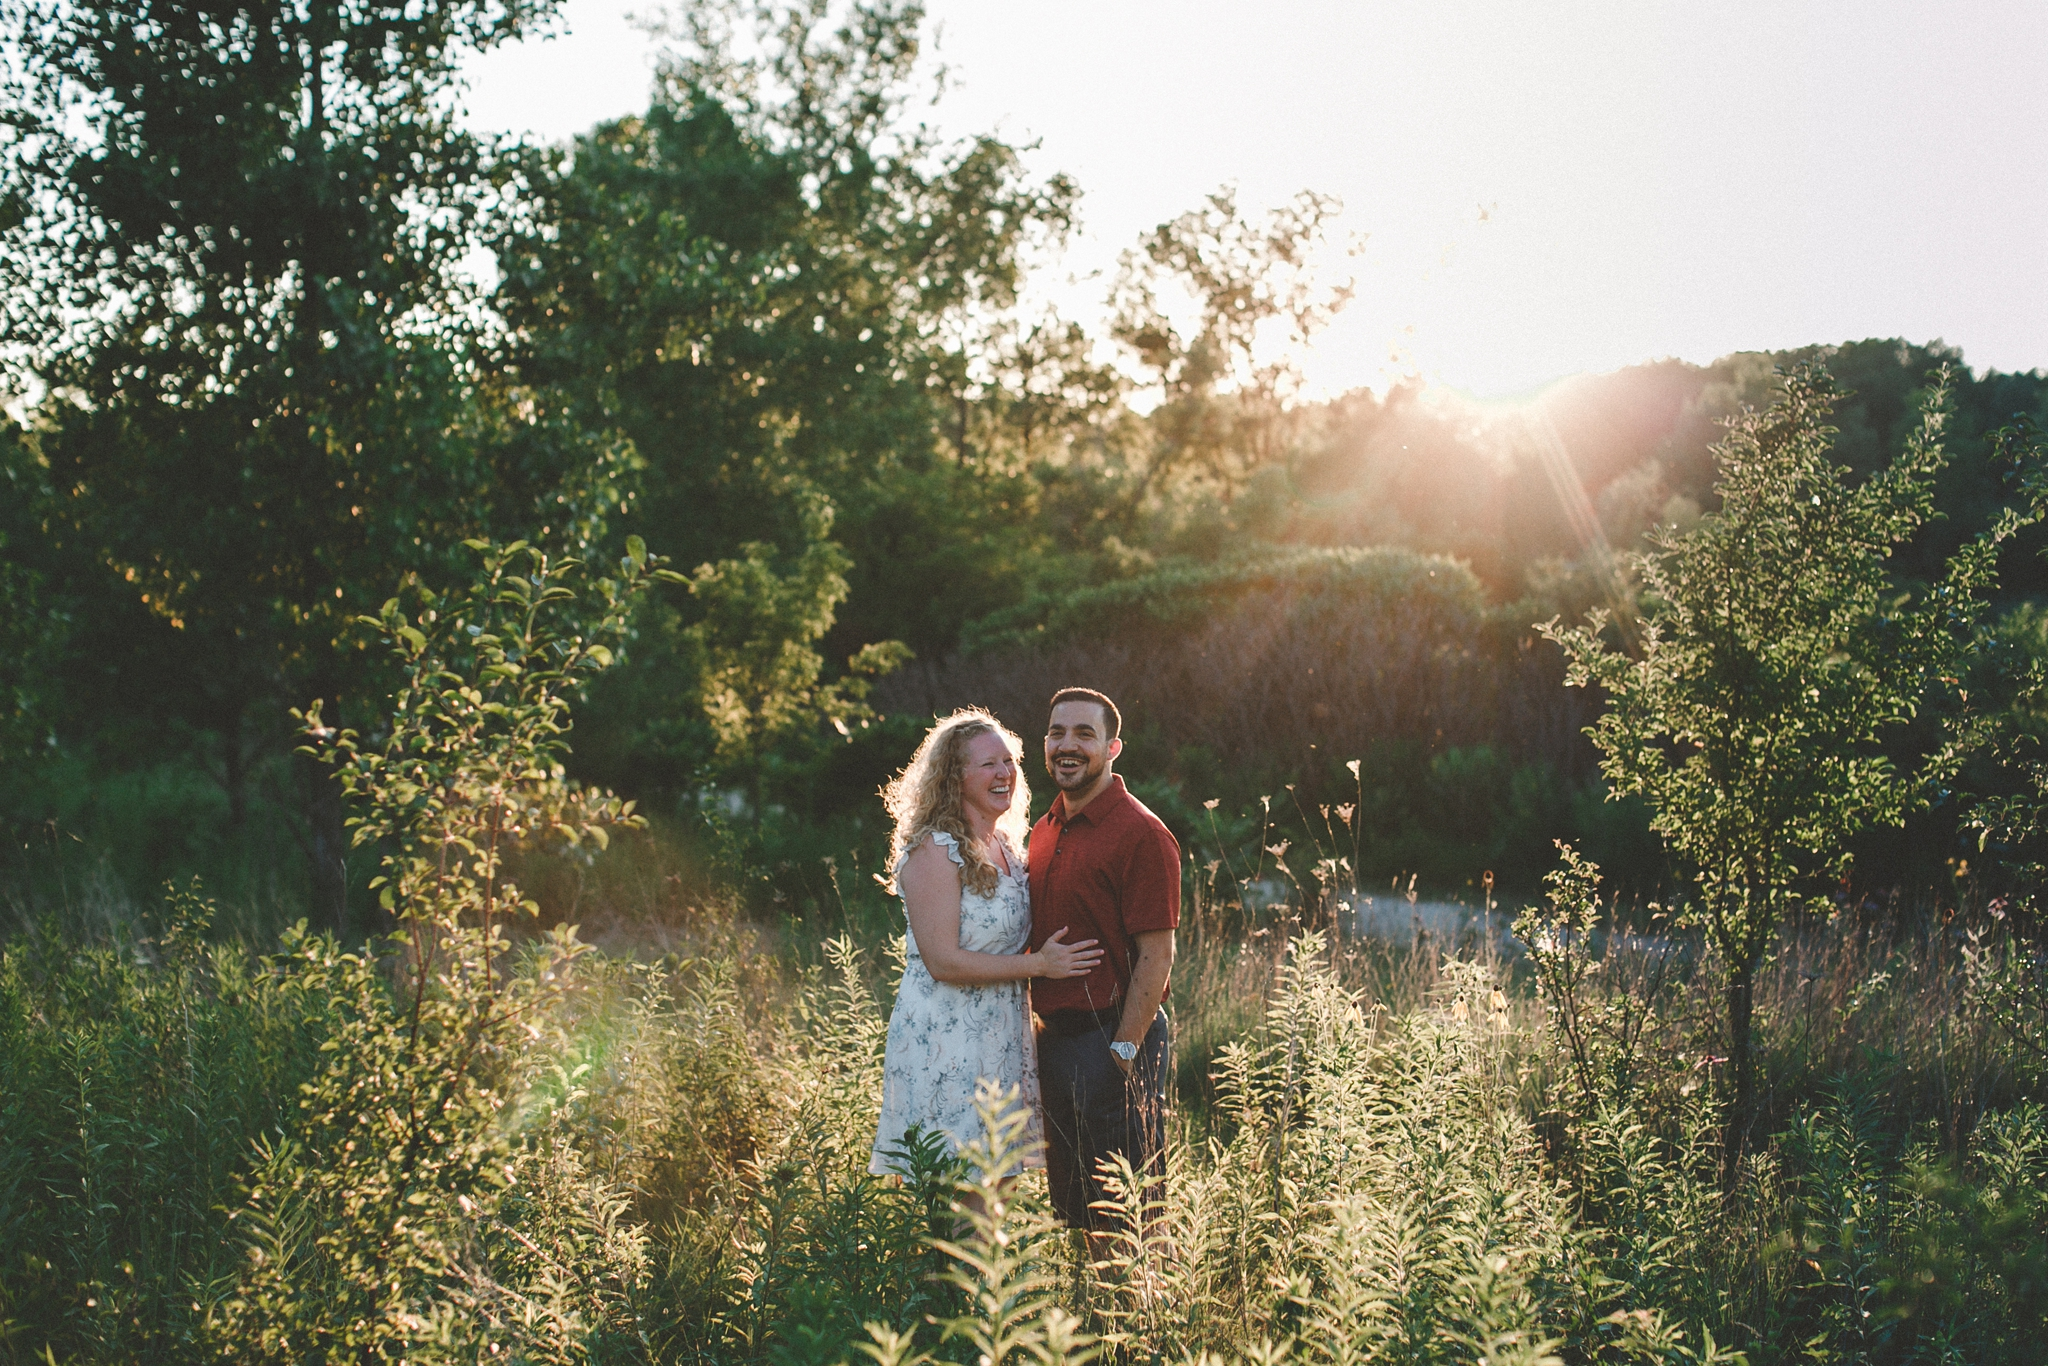 the_hollows_crystal_lake_IL_wedding_engagement_photographer_0020.jpg